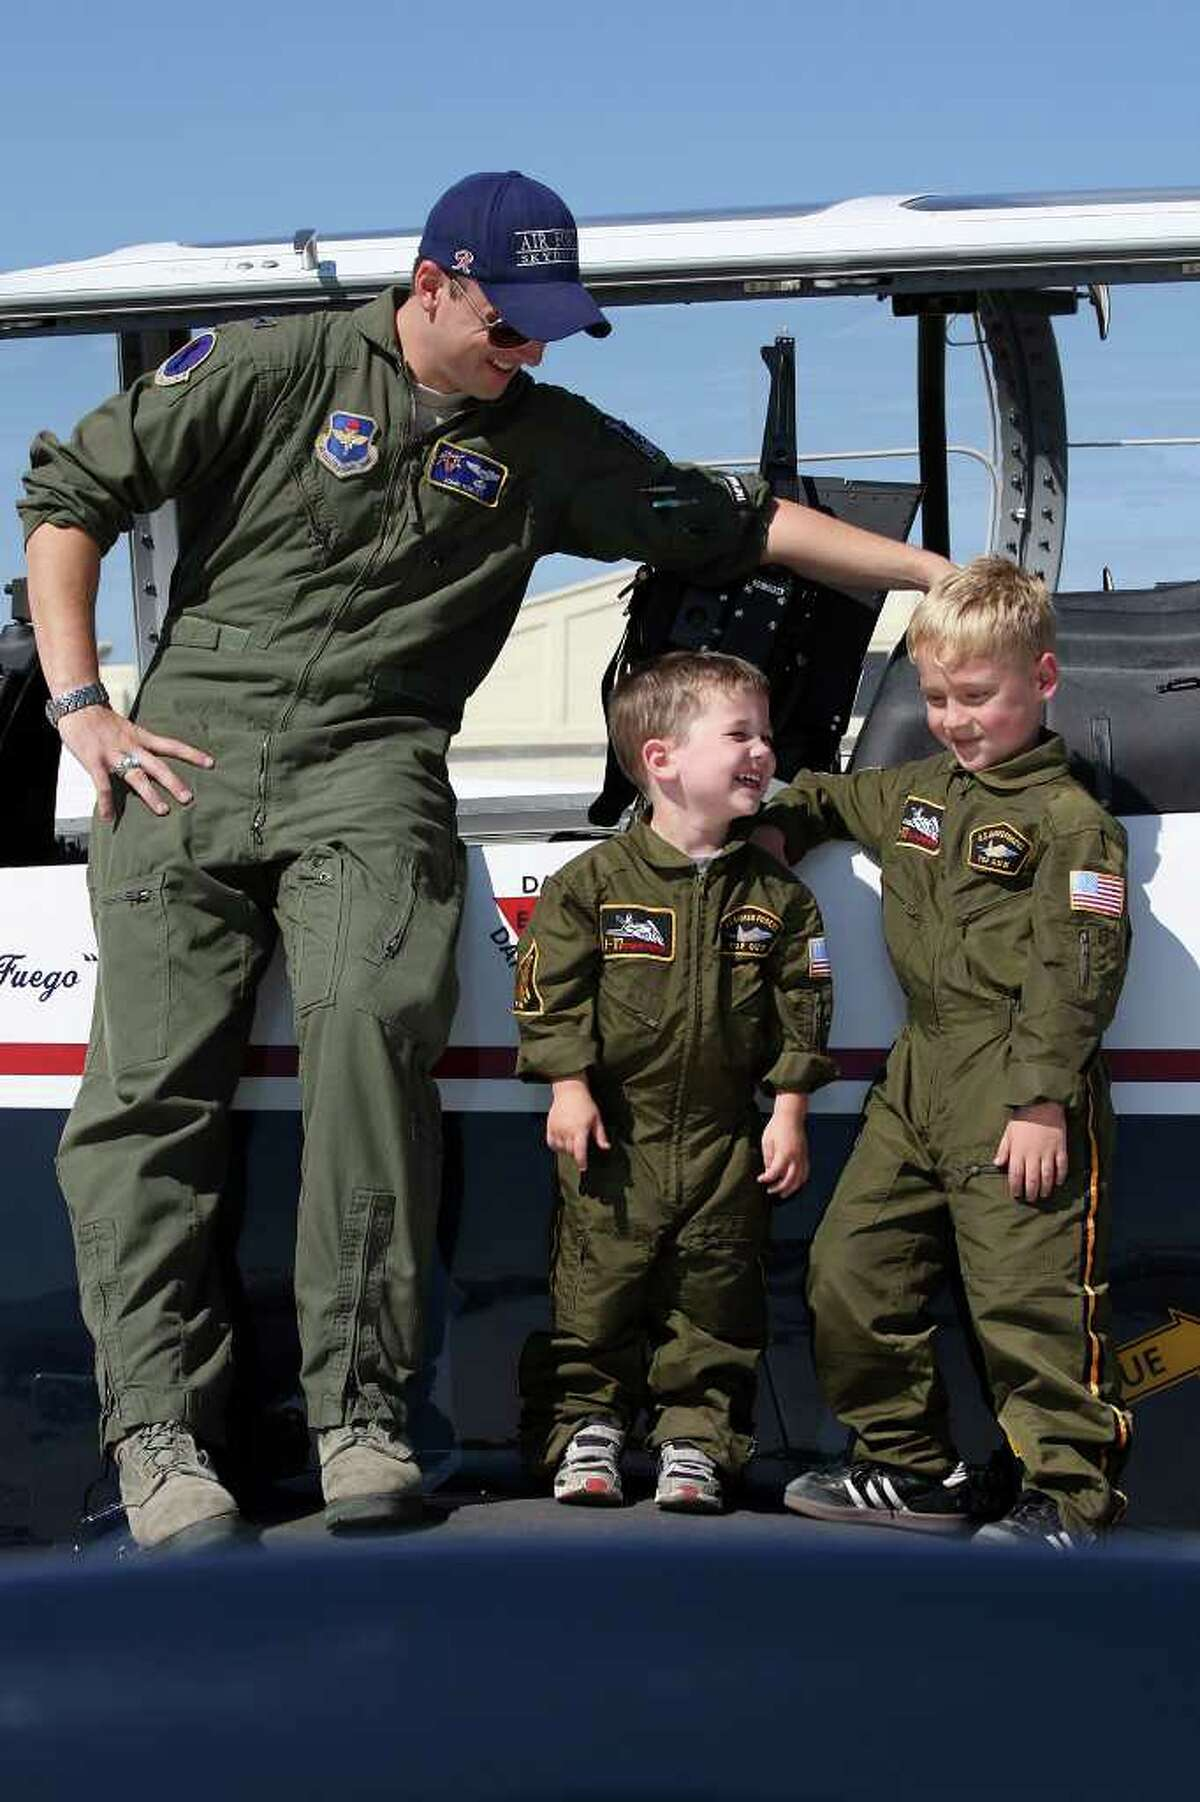 METRO - In their Halloween costumes, brothers Jay, 4, center, and Ian Campbell, 4, of Schertz, pose with Lt. John Harvey by a T-6A Texan II during the last day of the Randolph Air Show, Sunday, Oct. 30, 2011. The show featured the U.S. Navy Blue Angels as its finale. The Texan is part of the 359th Flying Training Squadron at the base. Campbell was dress in his Halloween costume. JERRY LARA/glara@express-news.net